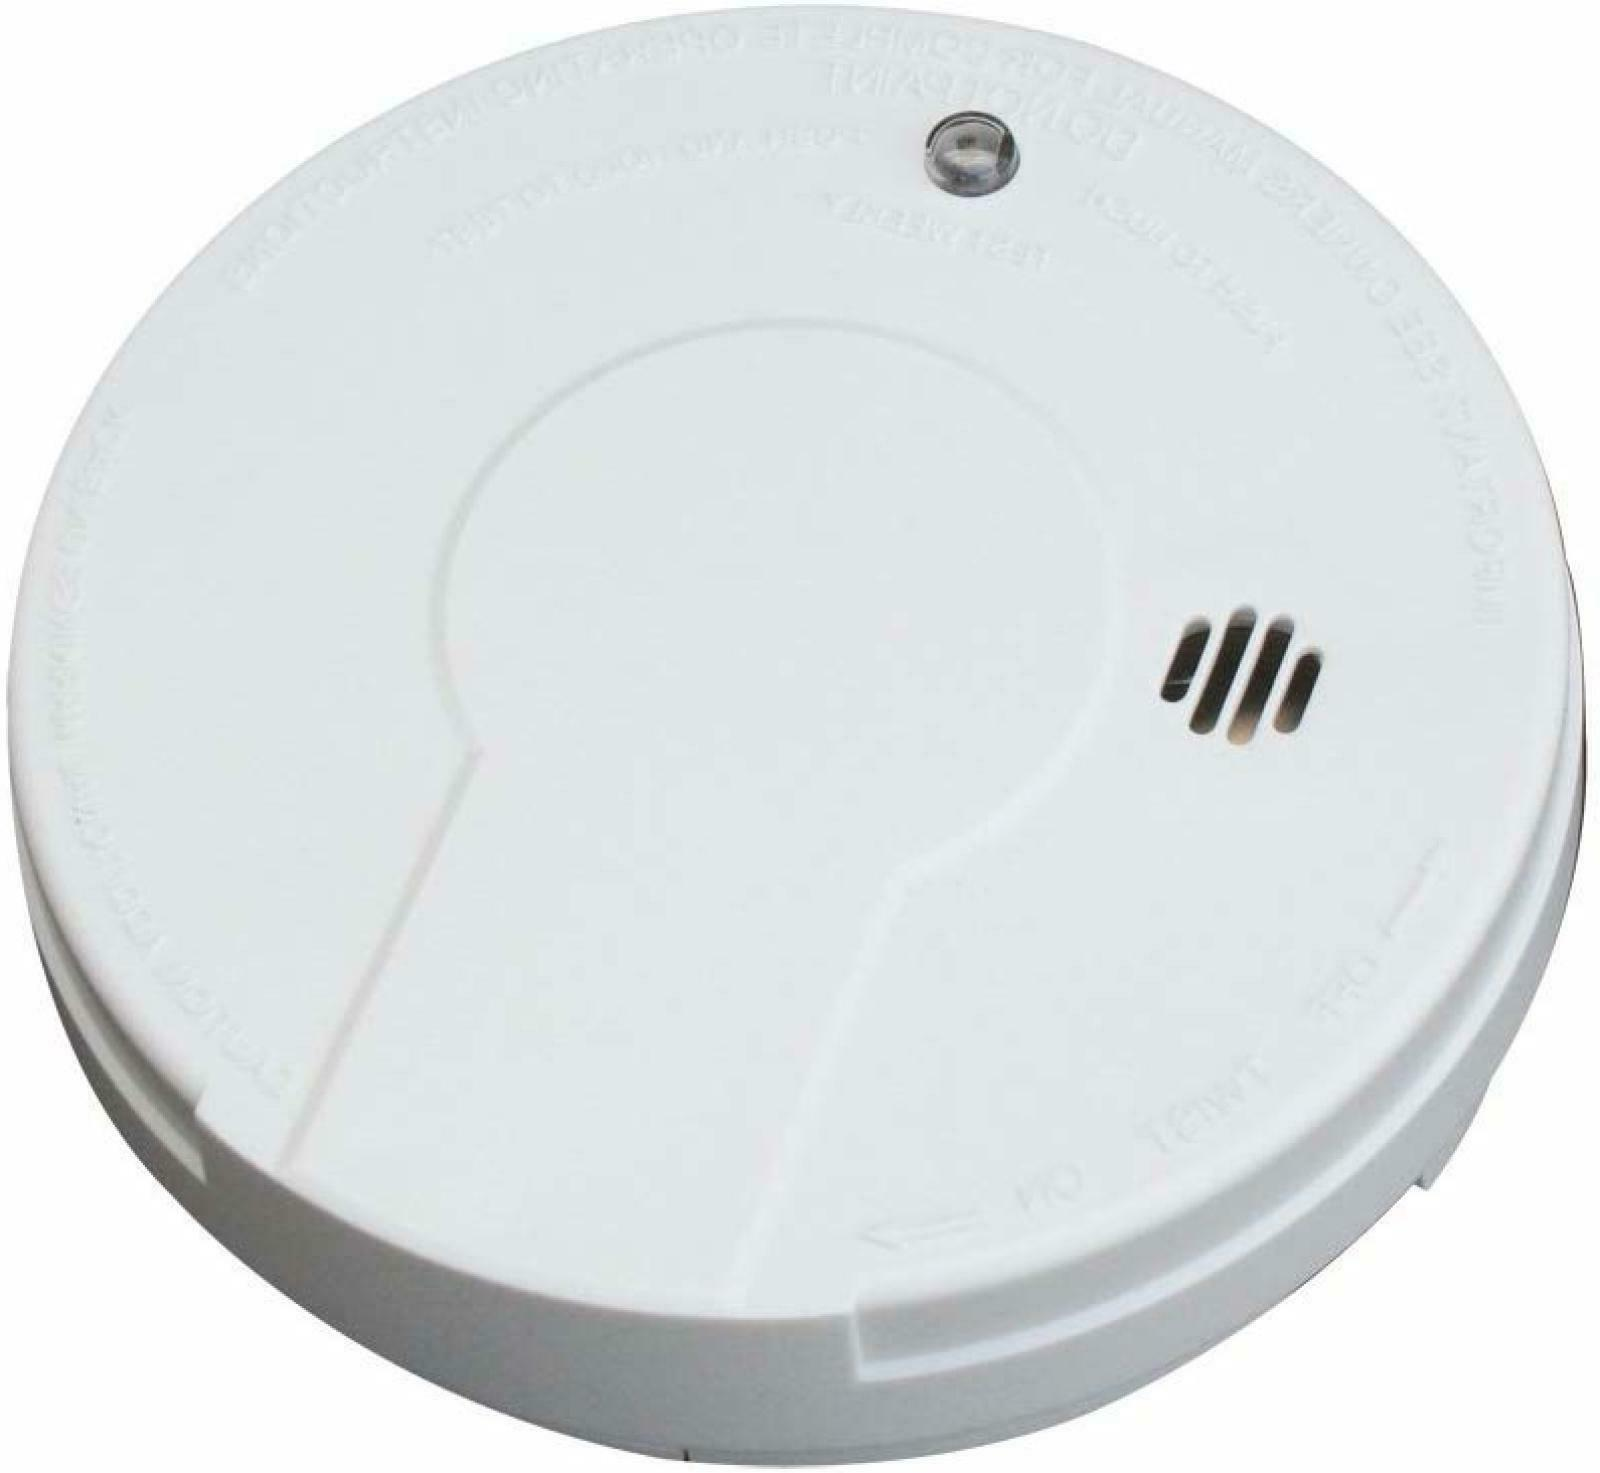 Kidde Battery Operated Smoke Alarm I9050 Manual Guide